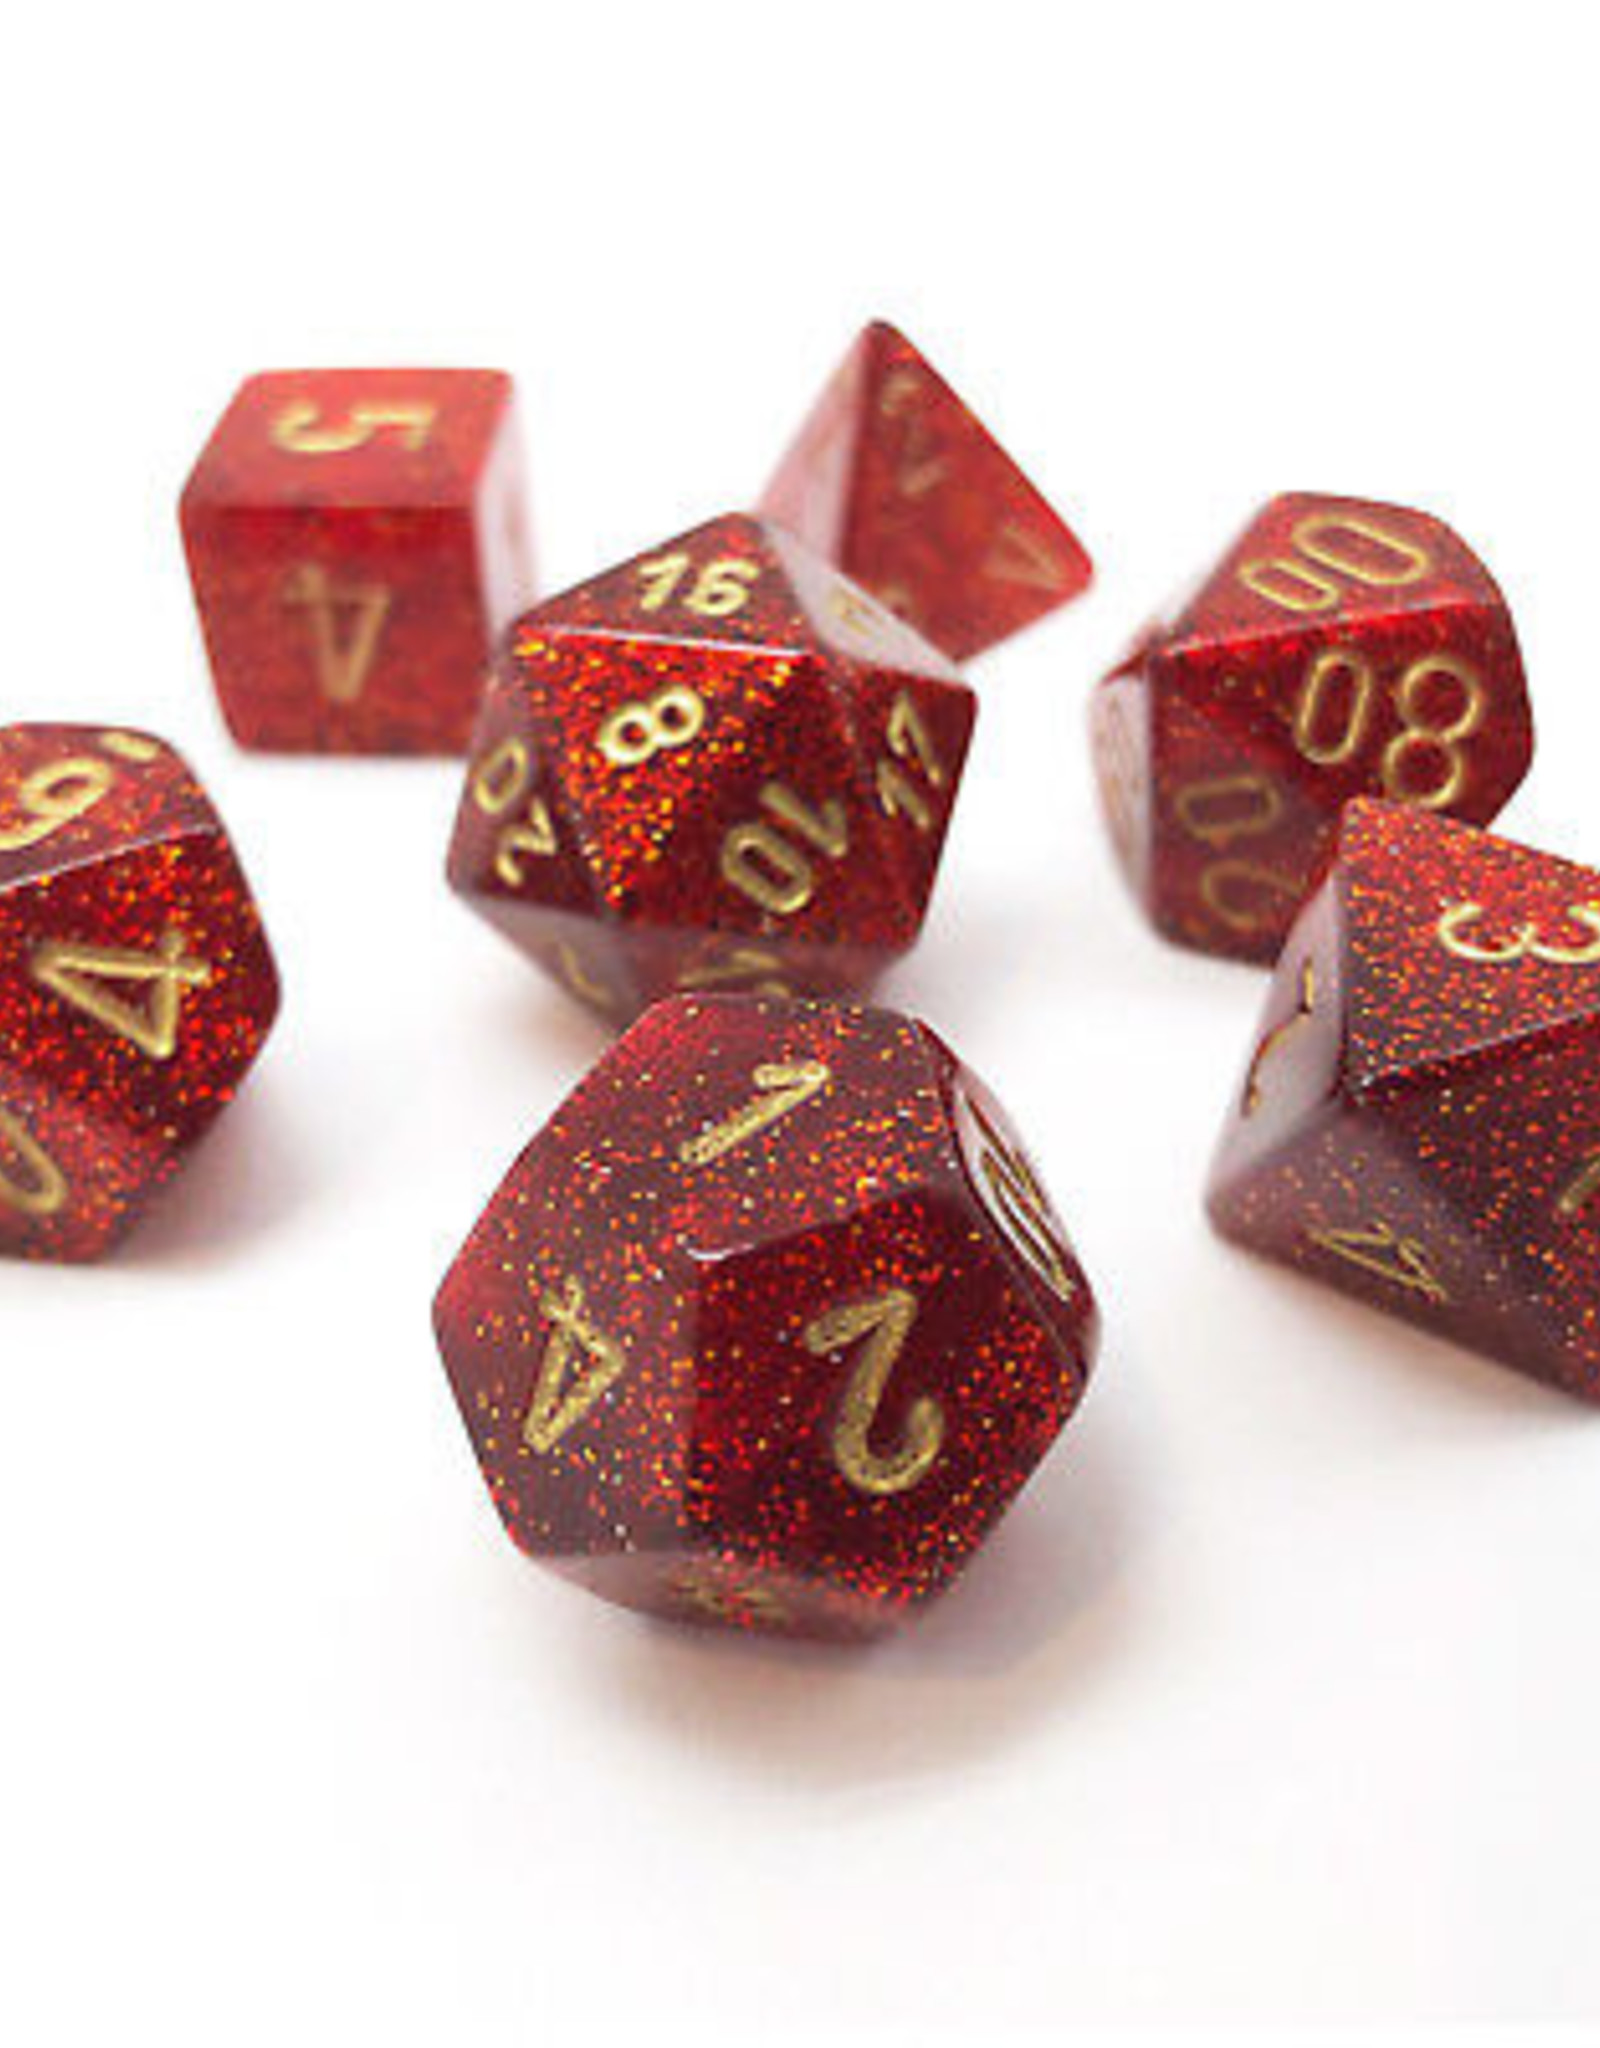 Chessex Chessex 7-Die set Glitter - Ruby Red/Gold